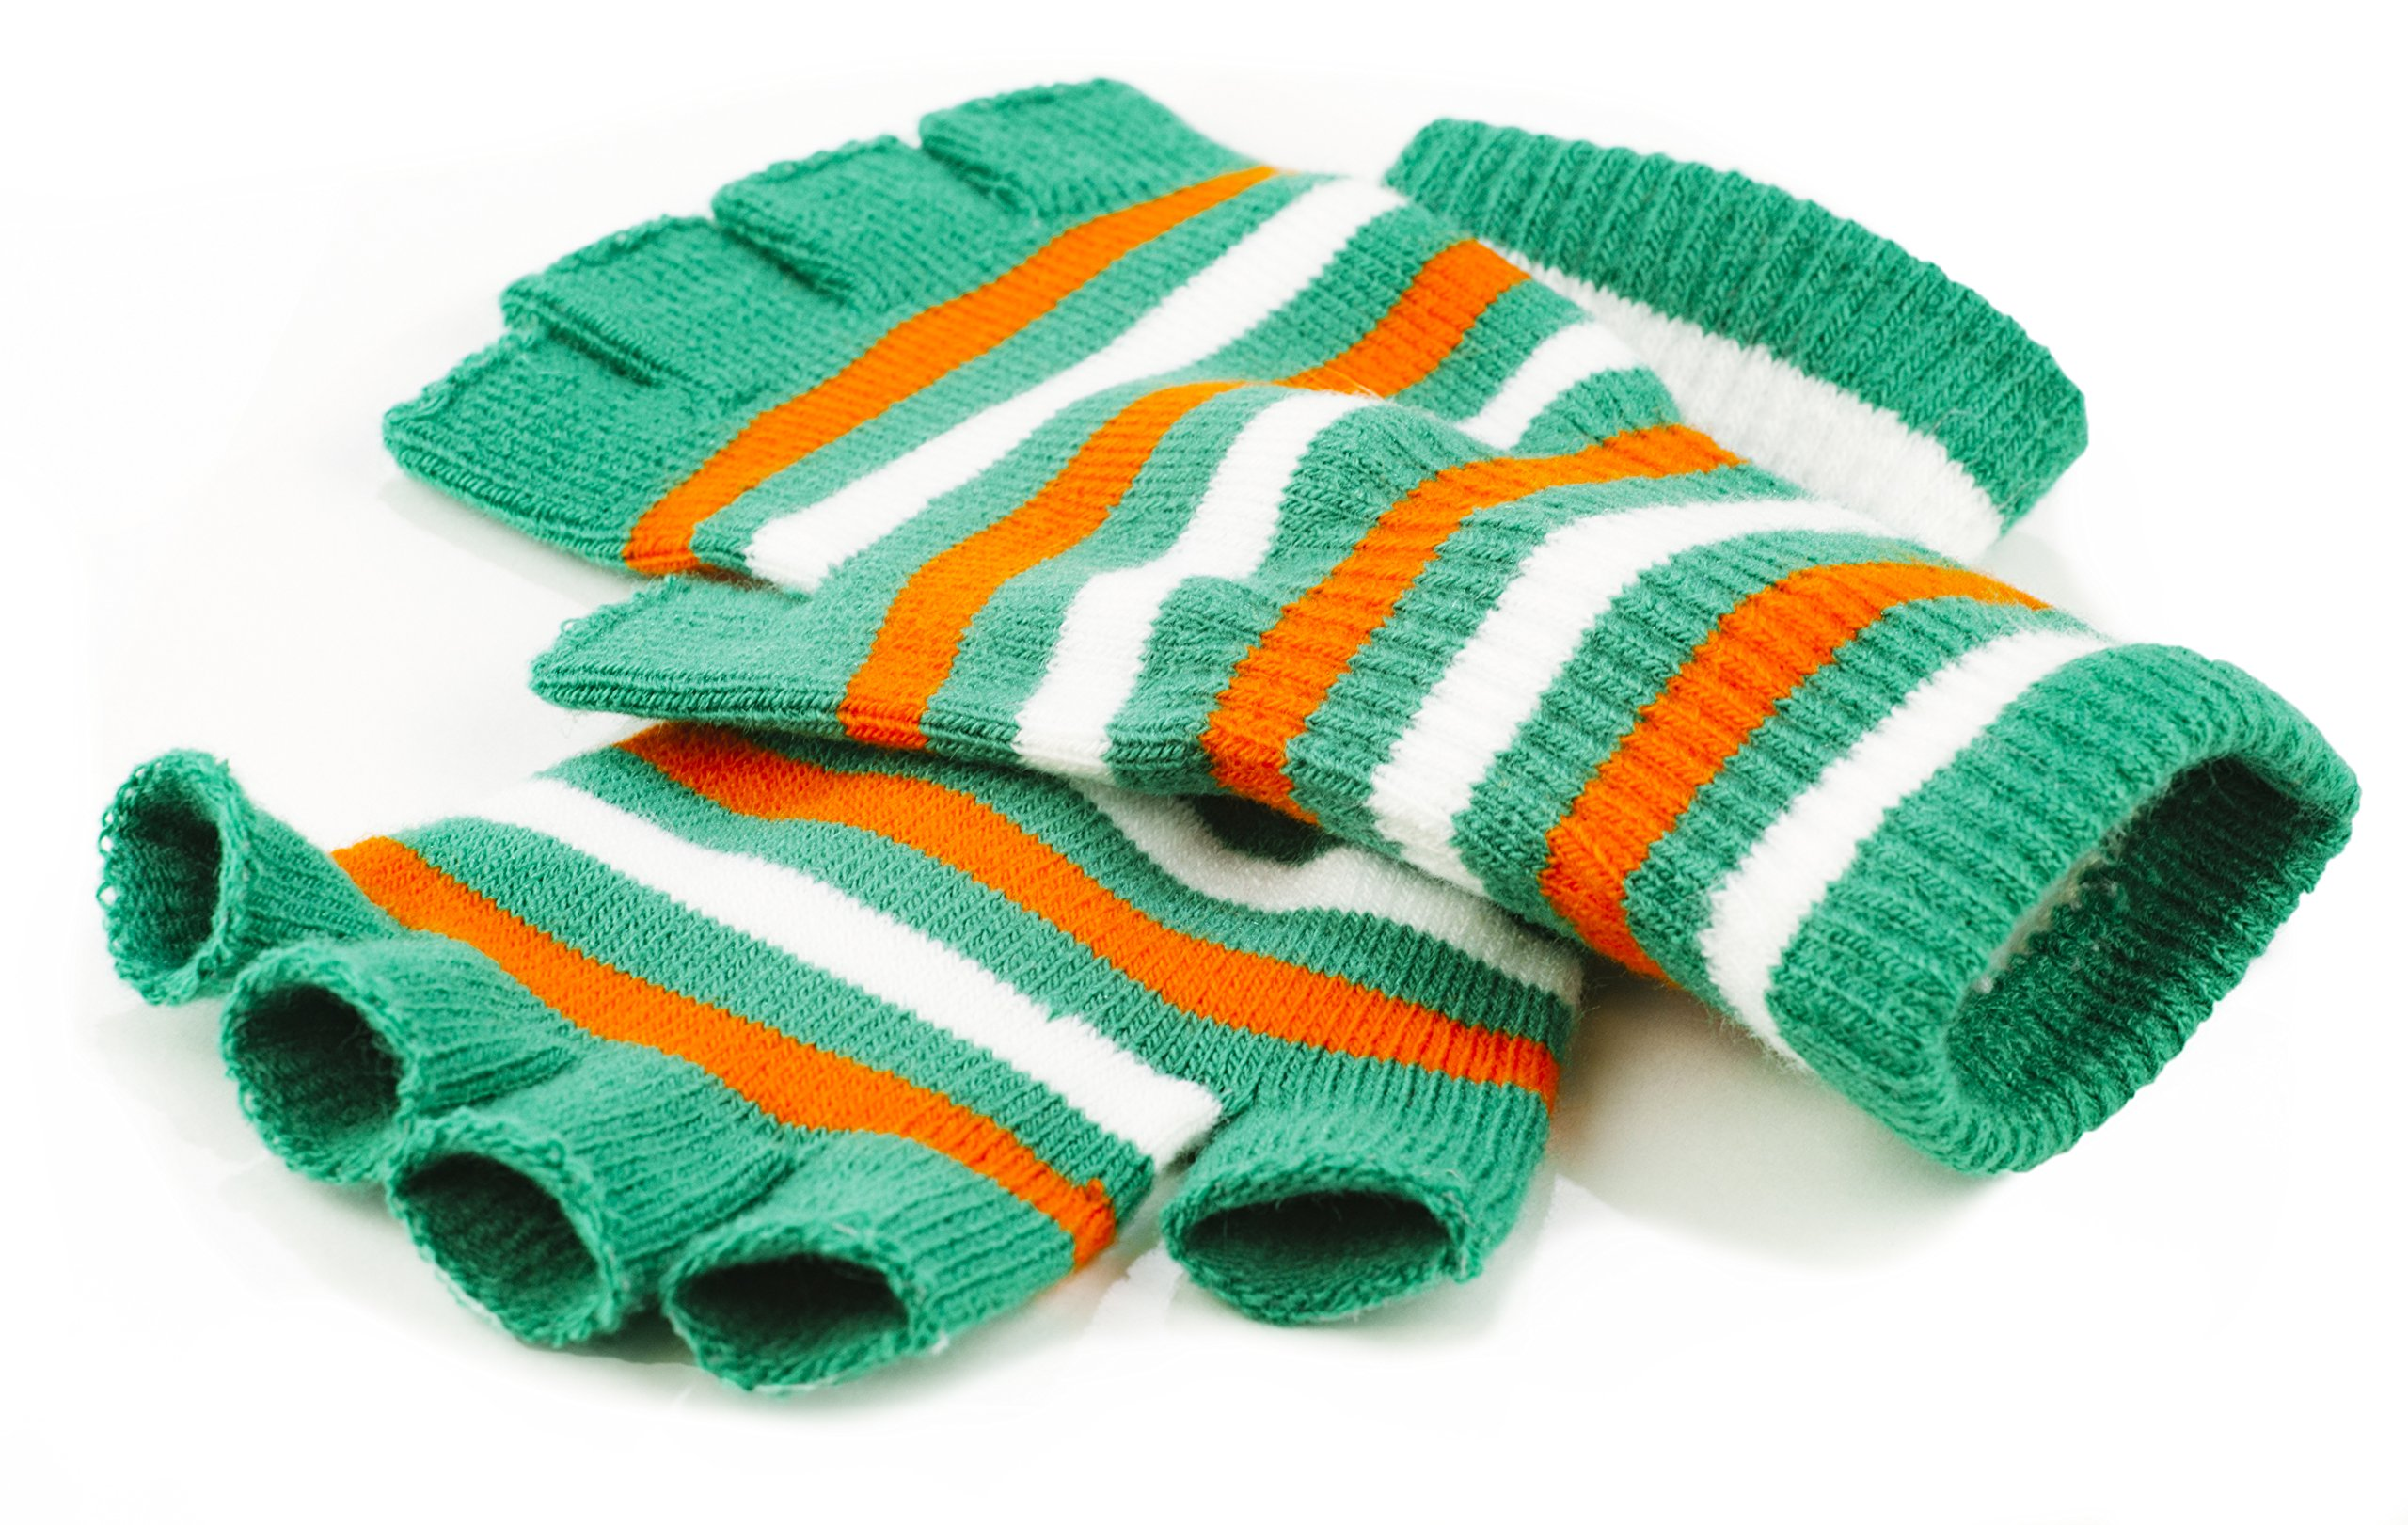 Funny Guy Mugs Warm Stretchy Knit Fingerless Gloves for Women and Men, St. Patty's Colors (Green/Orange/White Striped), One Size Fits Most